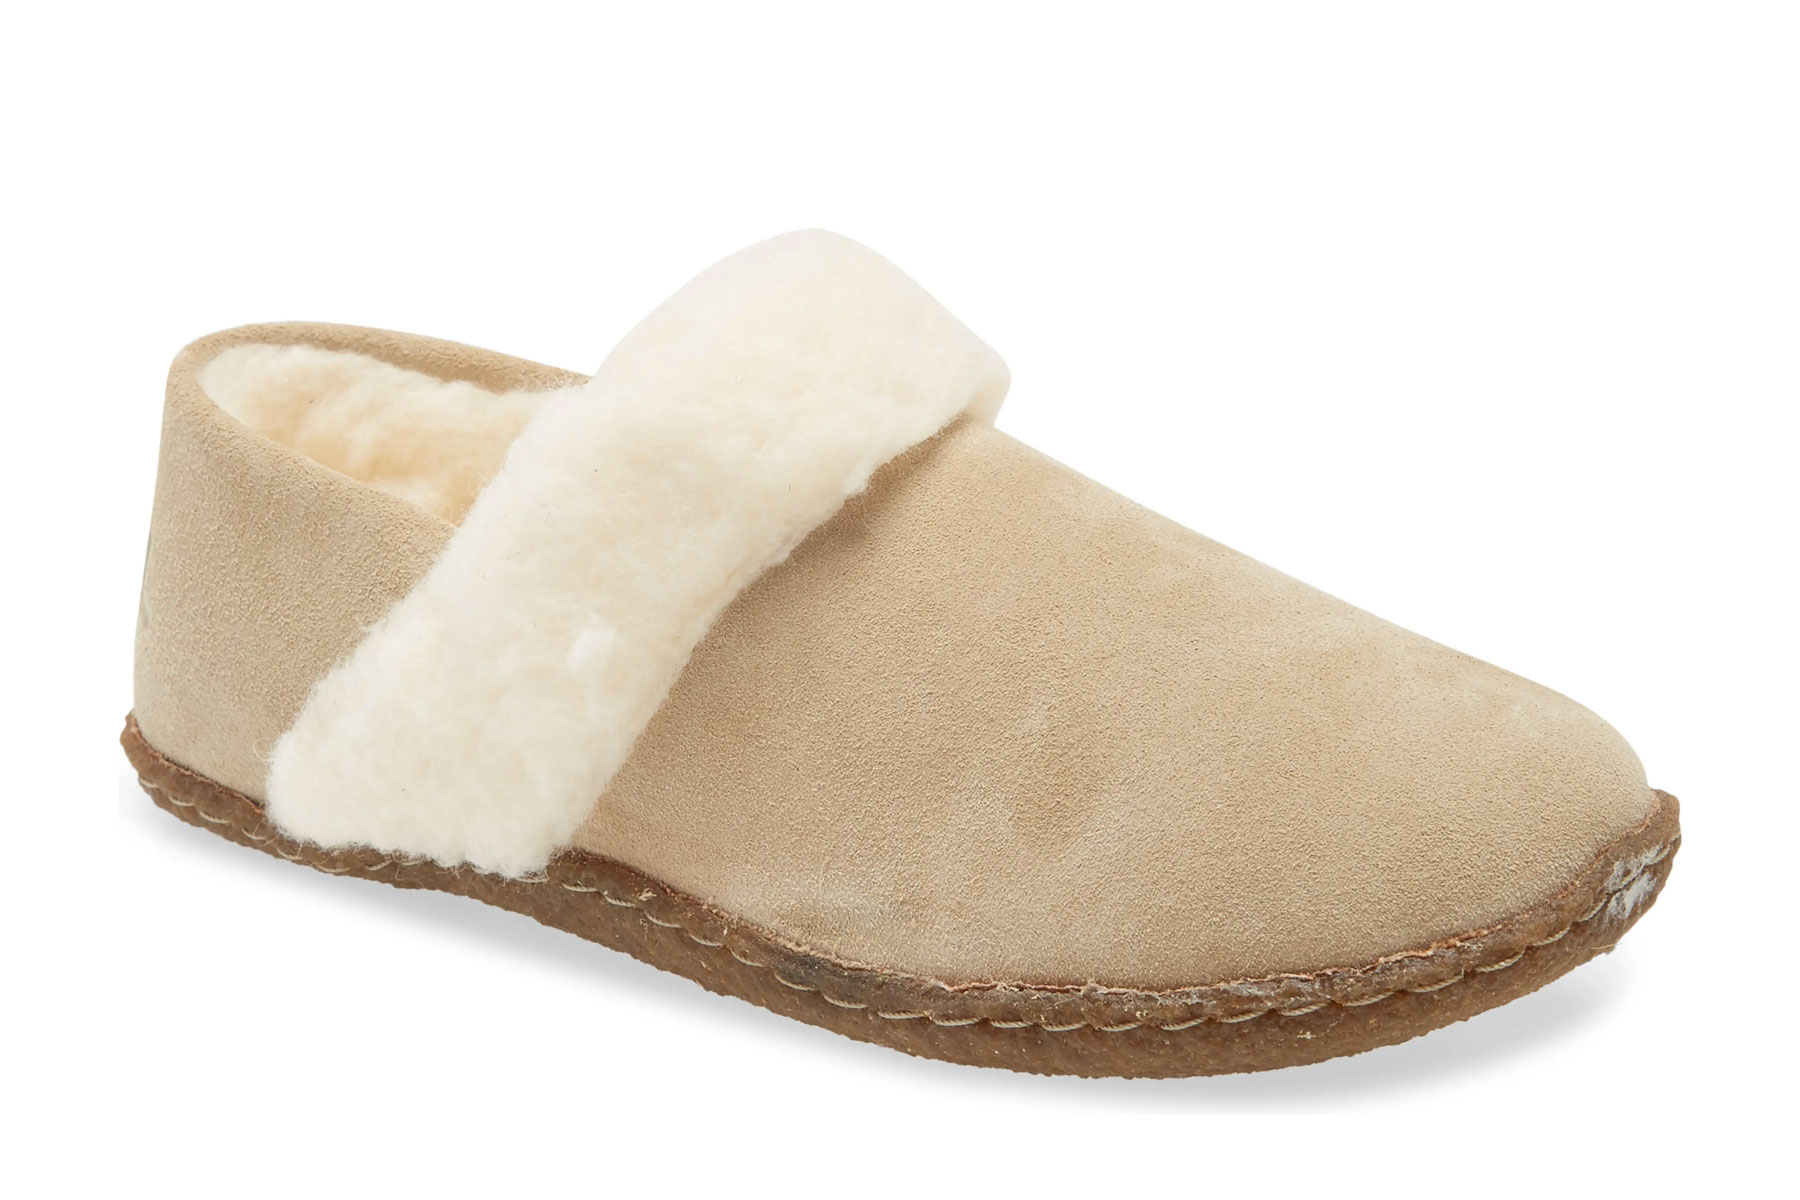 Tan and cream shearling slippers